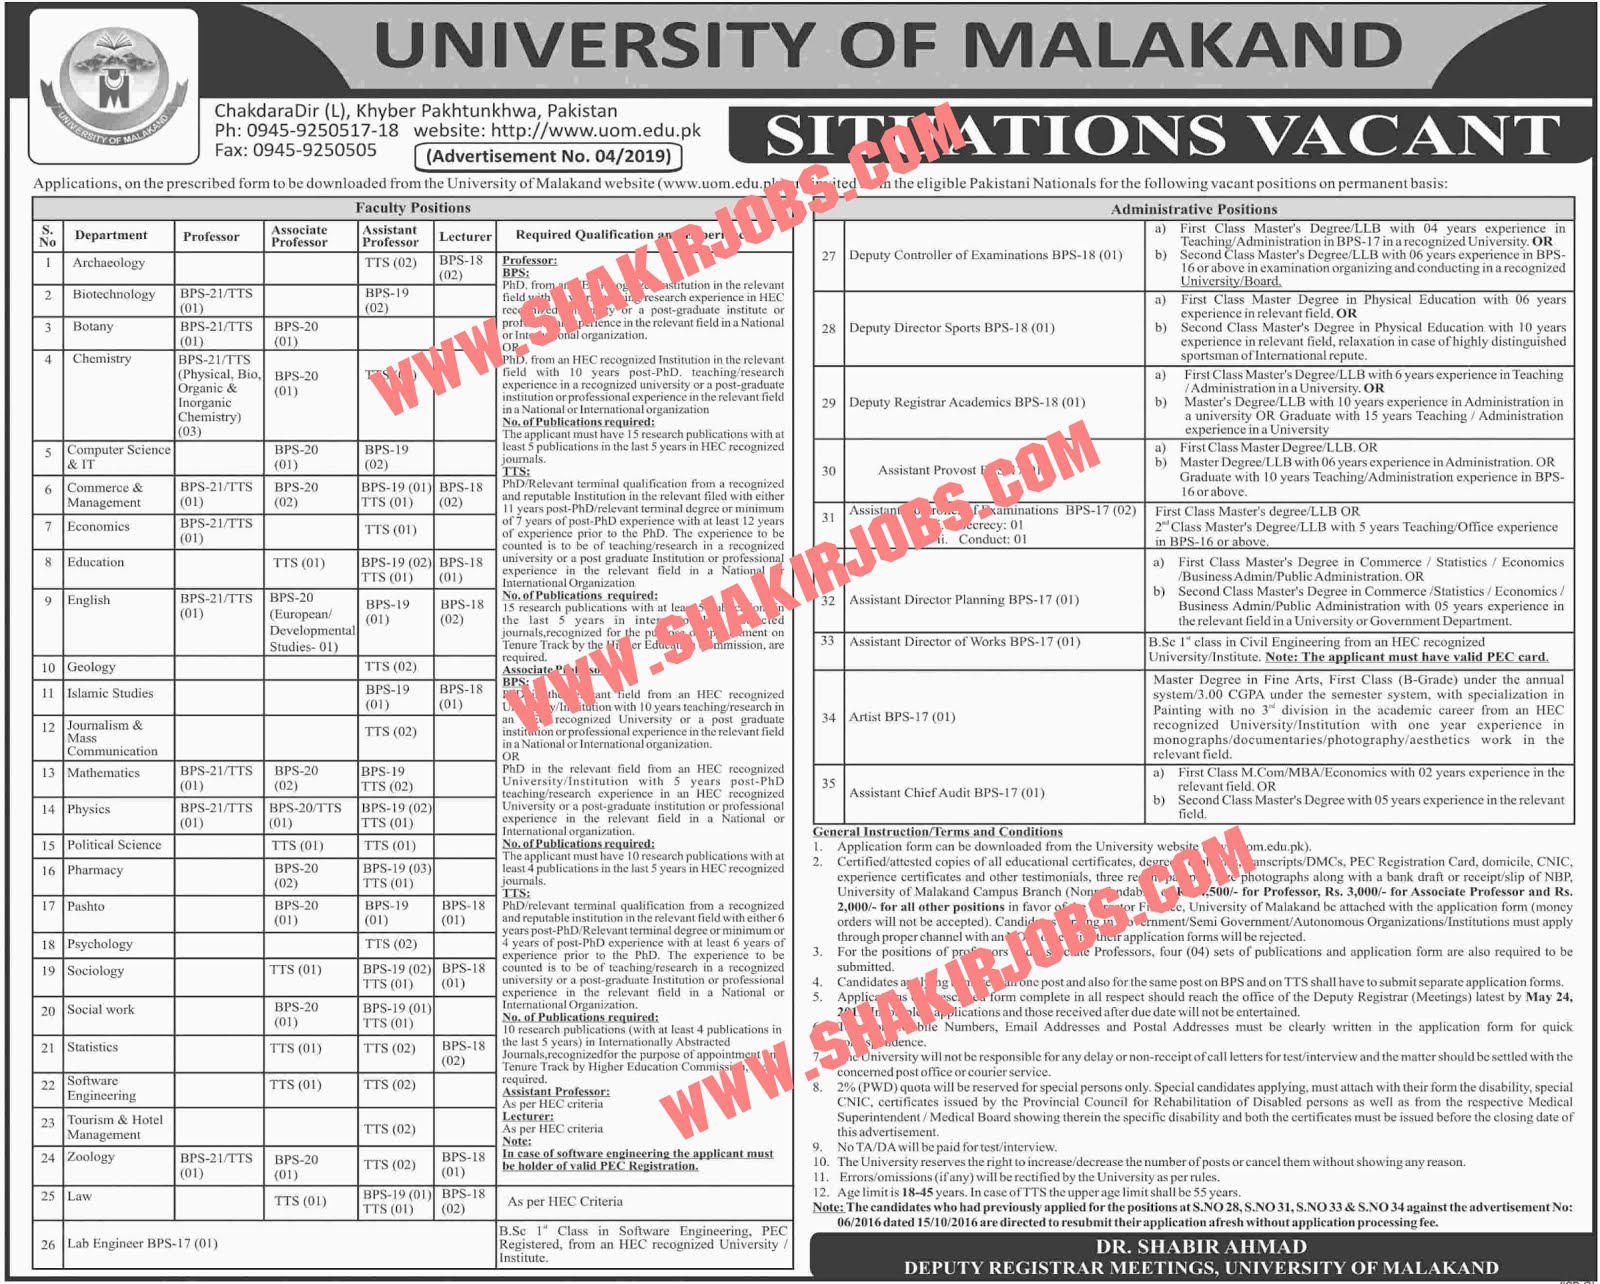 university of malakand,malakand university,malakand,university,university of malakand grils,university of malakand employes,university of malakand new video,university of malakand dir lower,university of malakand exhibition,naway soch ||university of malakand,university of malakand farwell party 2017 2018,university of swat,university of lahore new video,of malakand